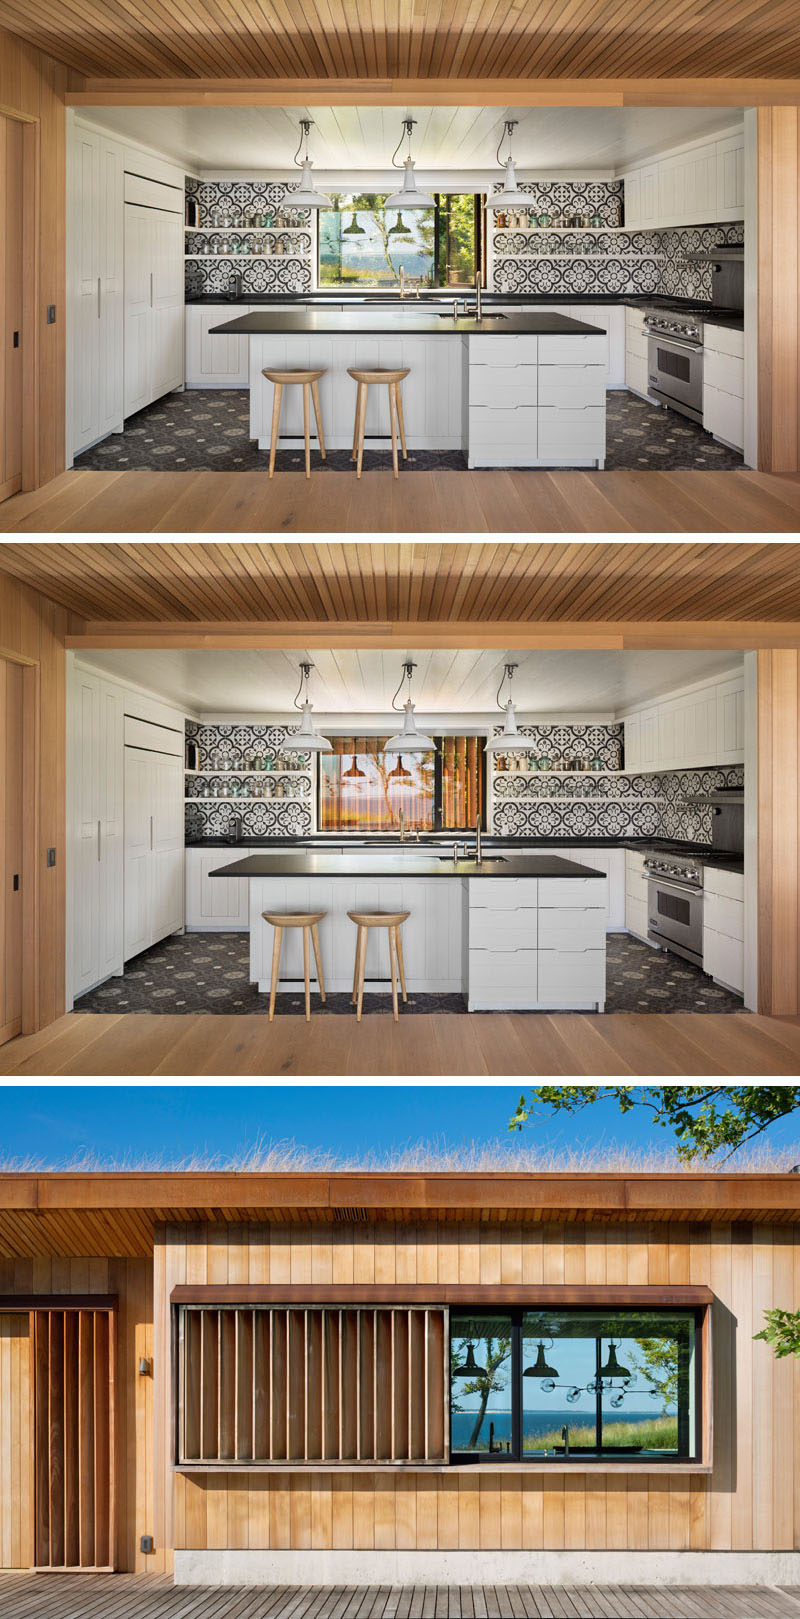 In this modern kitchen black and white patterned tiles line the wall and complement the white cabinets and black countertops. An exterior shutter can be closed across the window, hiding the kitchen from view from the front of the house. #Kitchen #BlackAndWhiteKitchen #Shutter